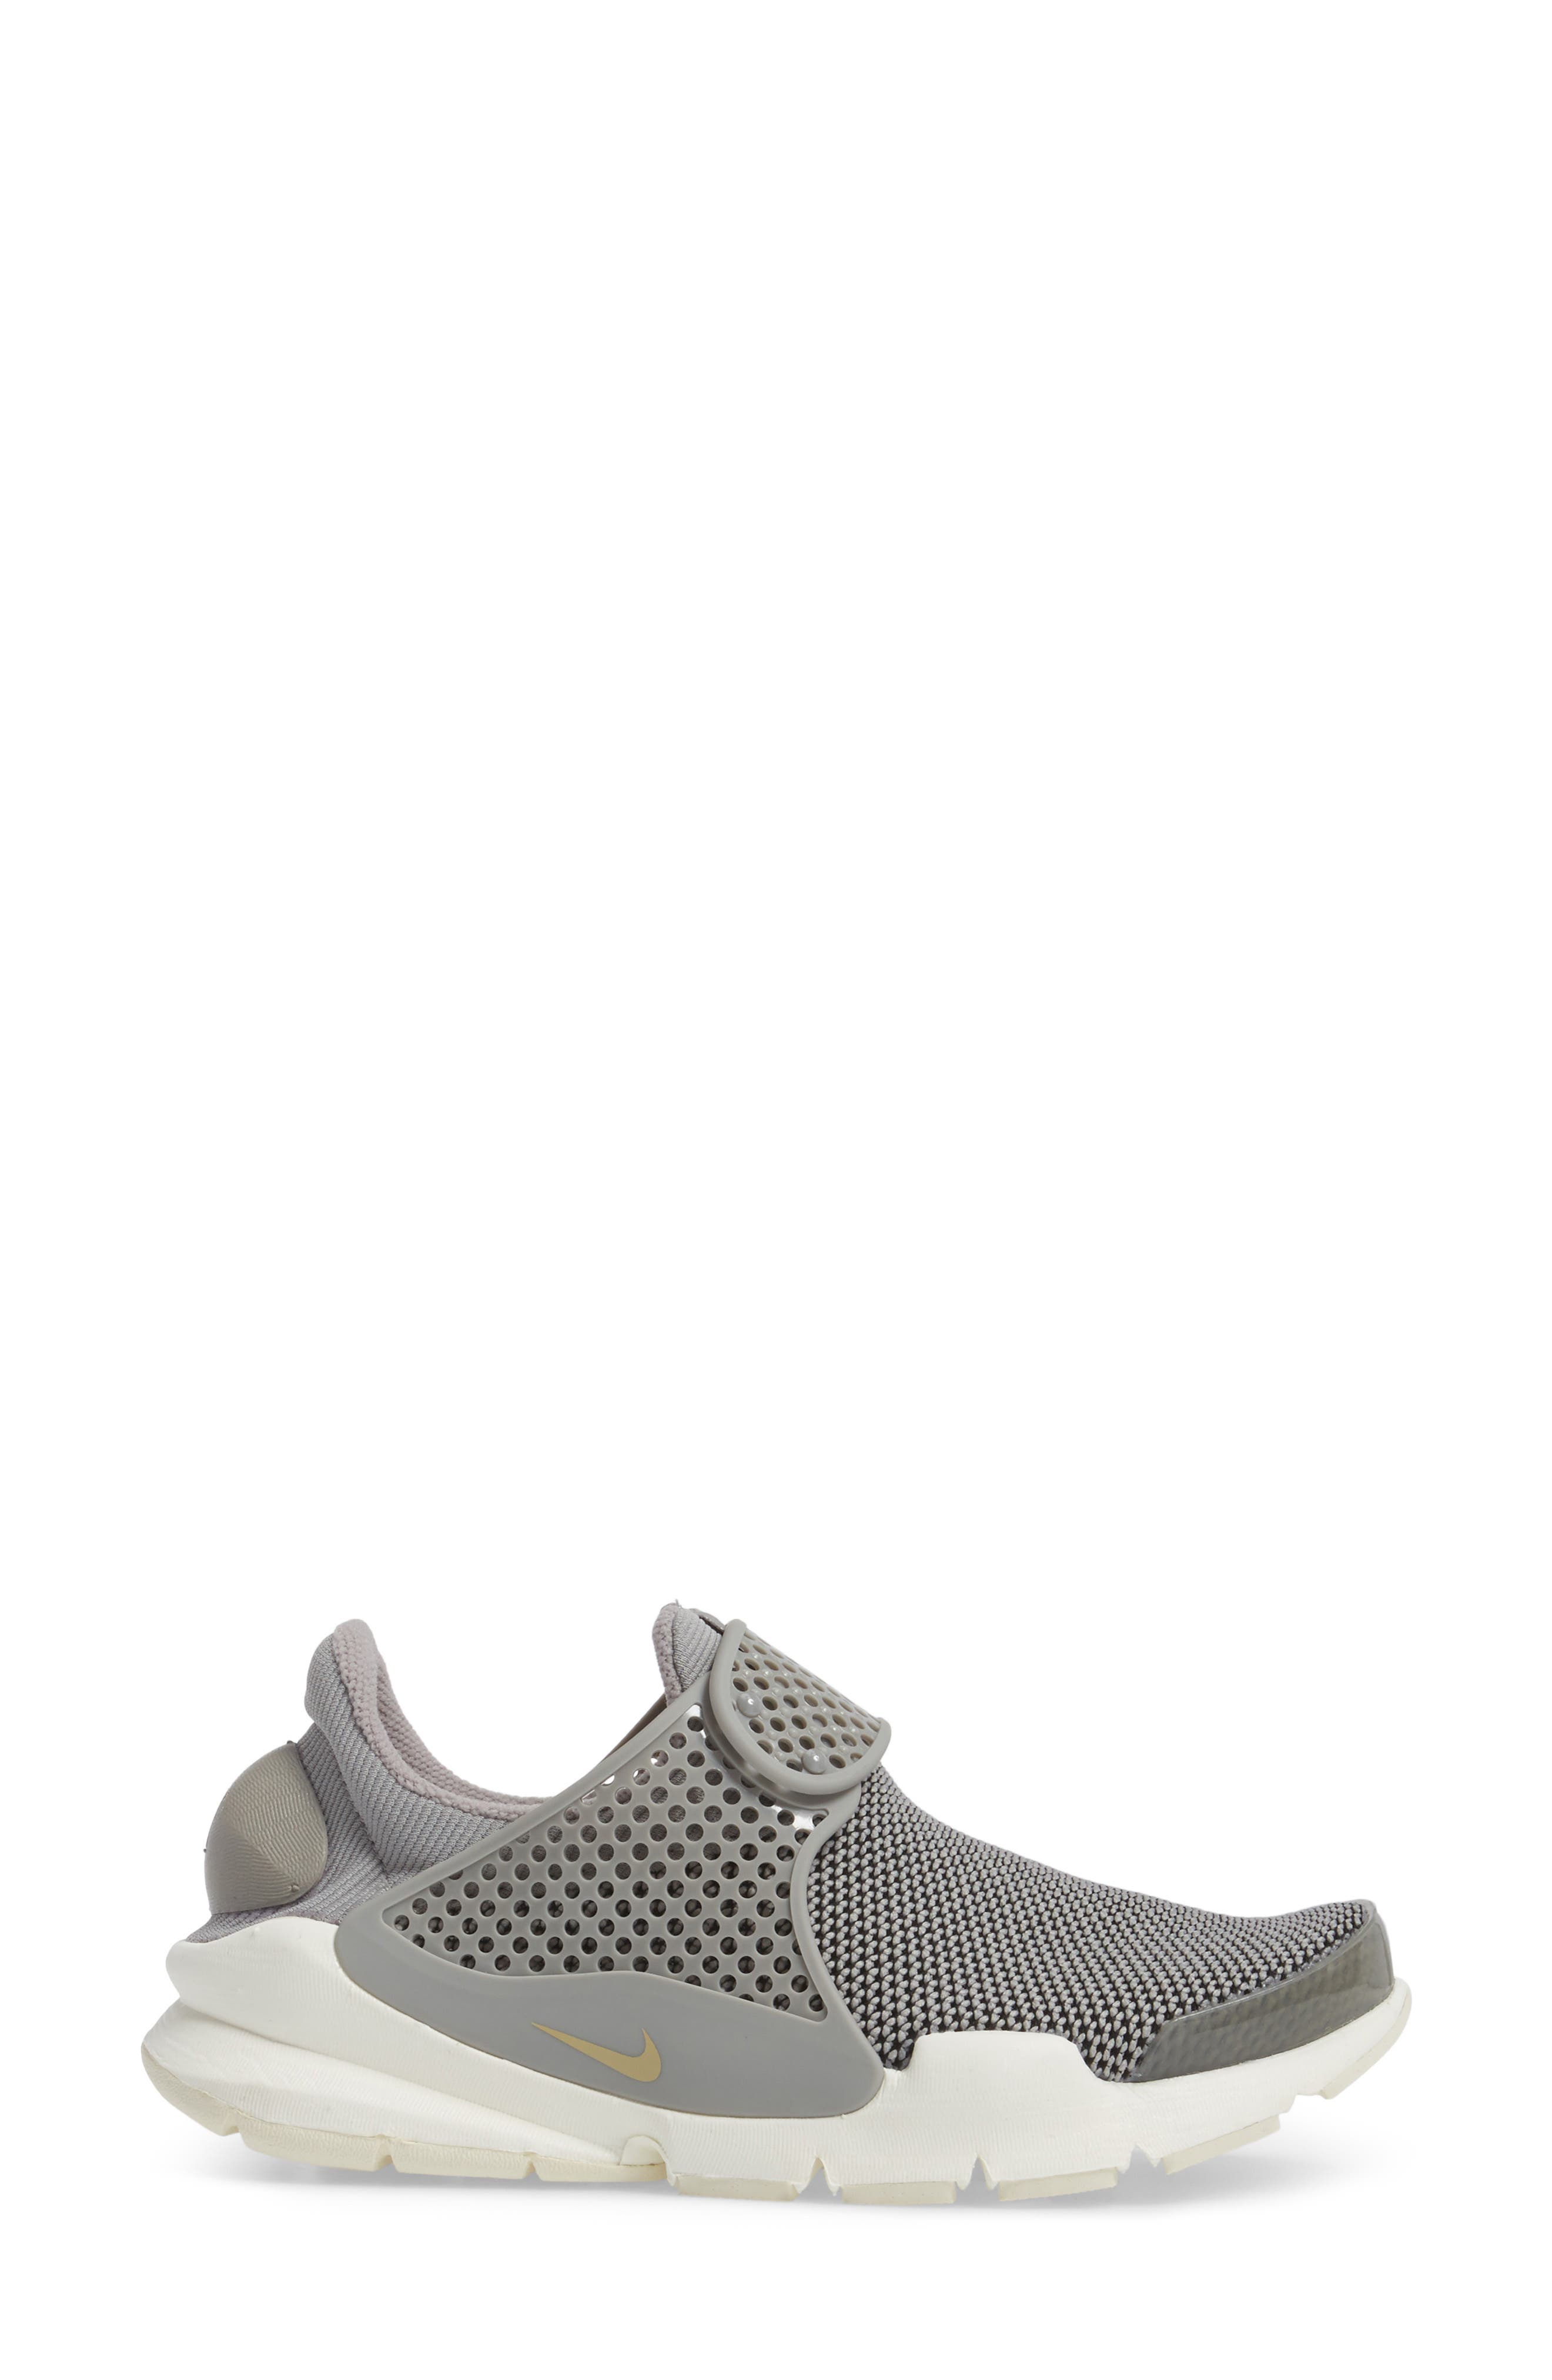 Sock Dart Sneaker,                             Alternate thumbnail 3, color,                             250